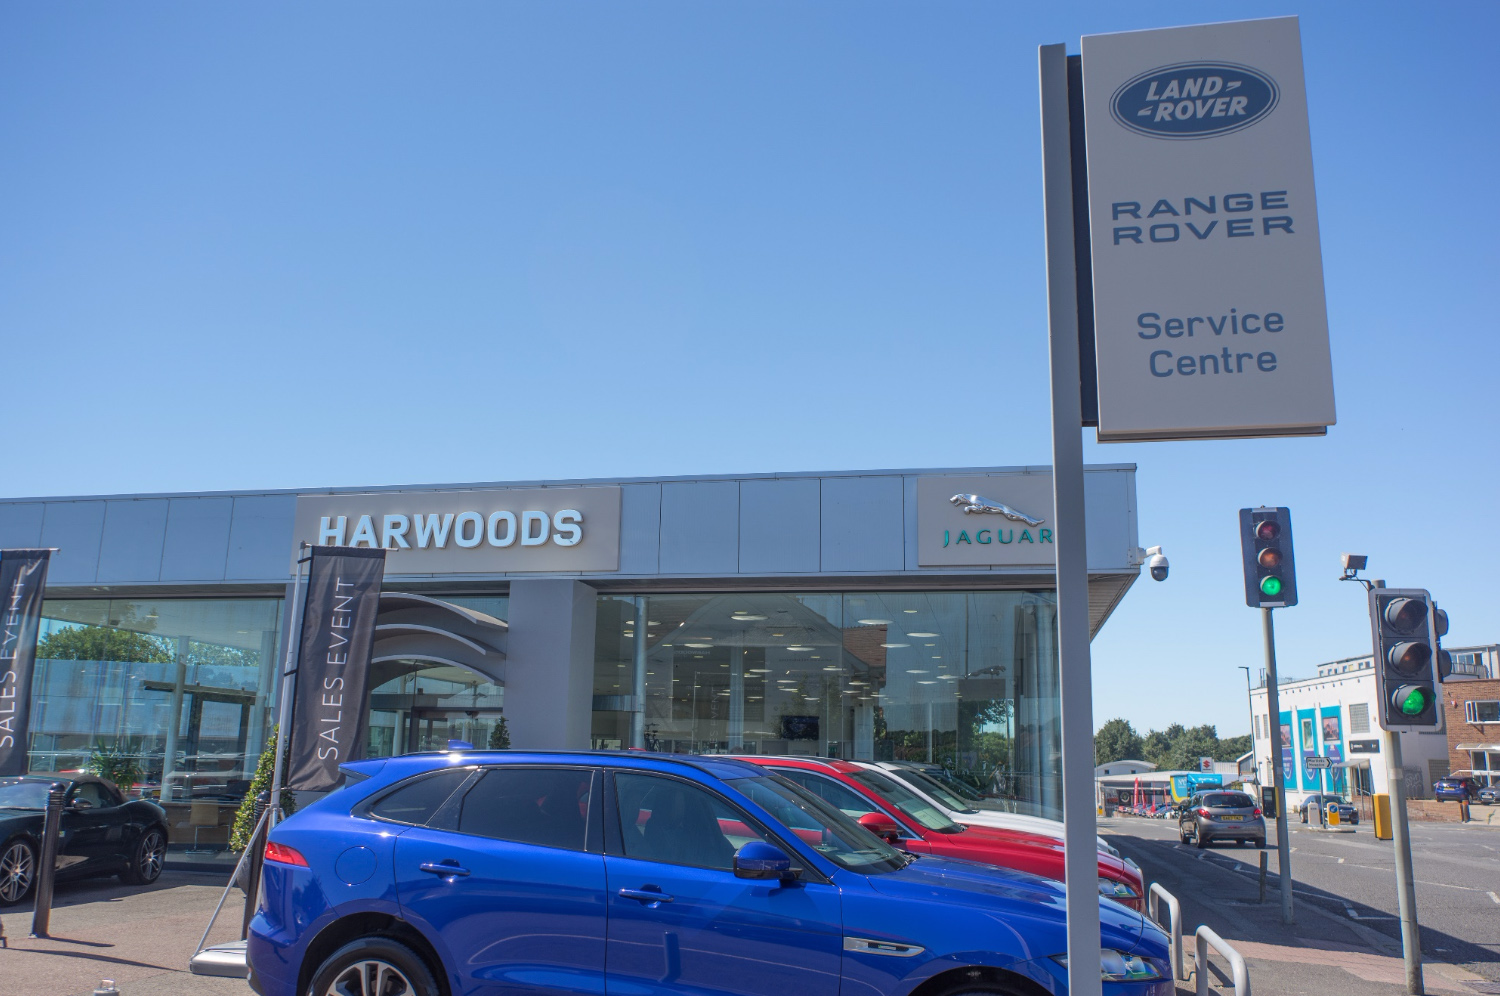 Land Rover Hove Approved Repairer